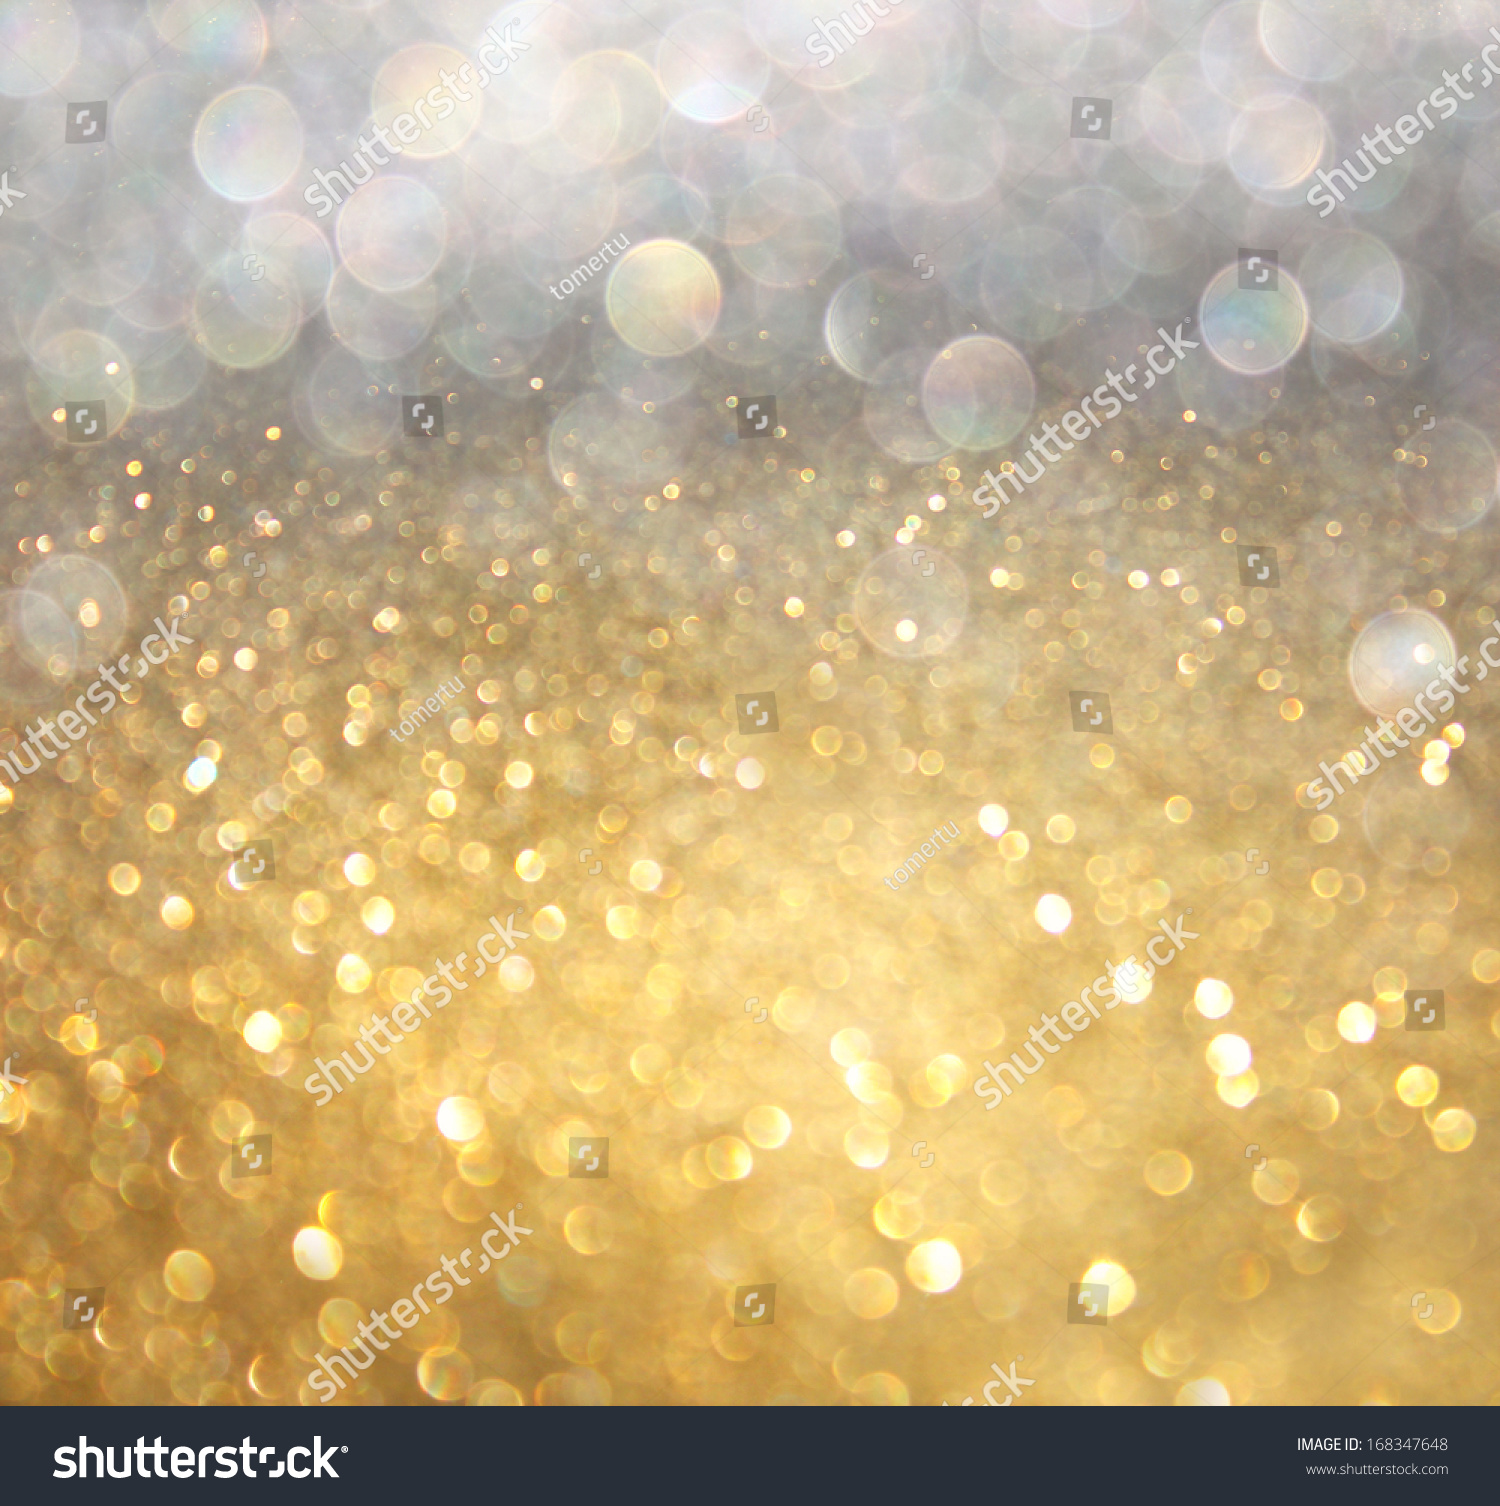 Silver and golden background of defocused abstract lights bokeh - White Silver Gold Abstract Bokeh Lights Stock Photo